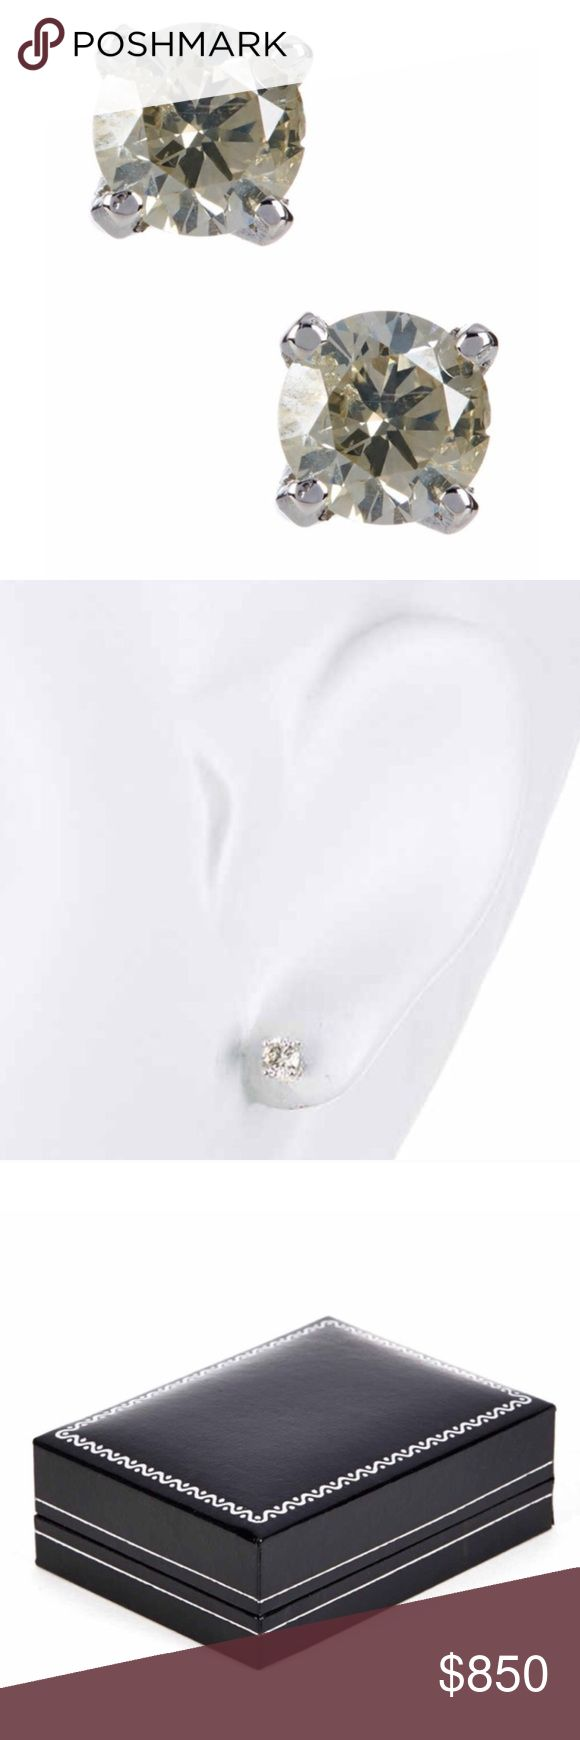 1 carat diamond earring studs. Diamond earring stud solitaire earrings that amount to 1 carat total weight. See original listing for all extra details. Sterling silver posts. Jewelry Earrings